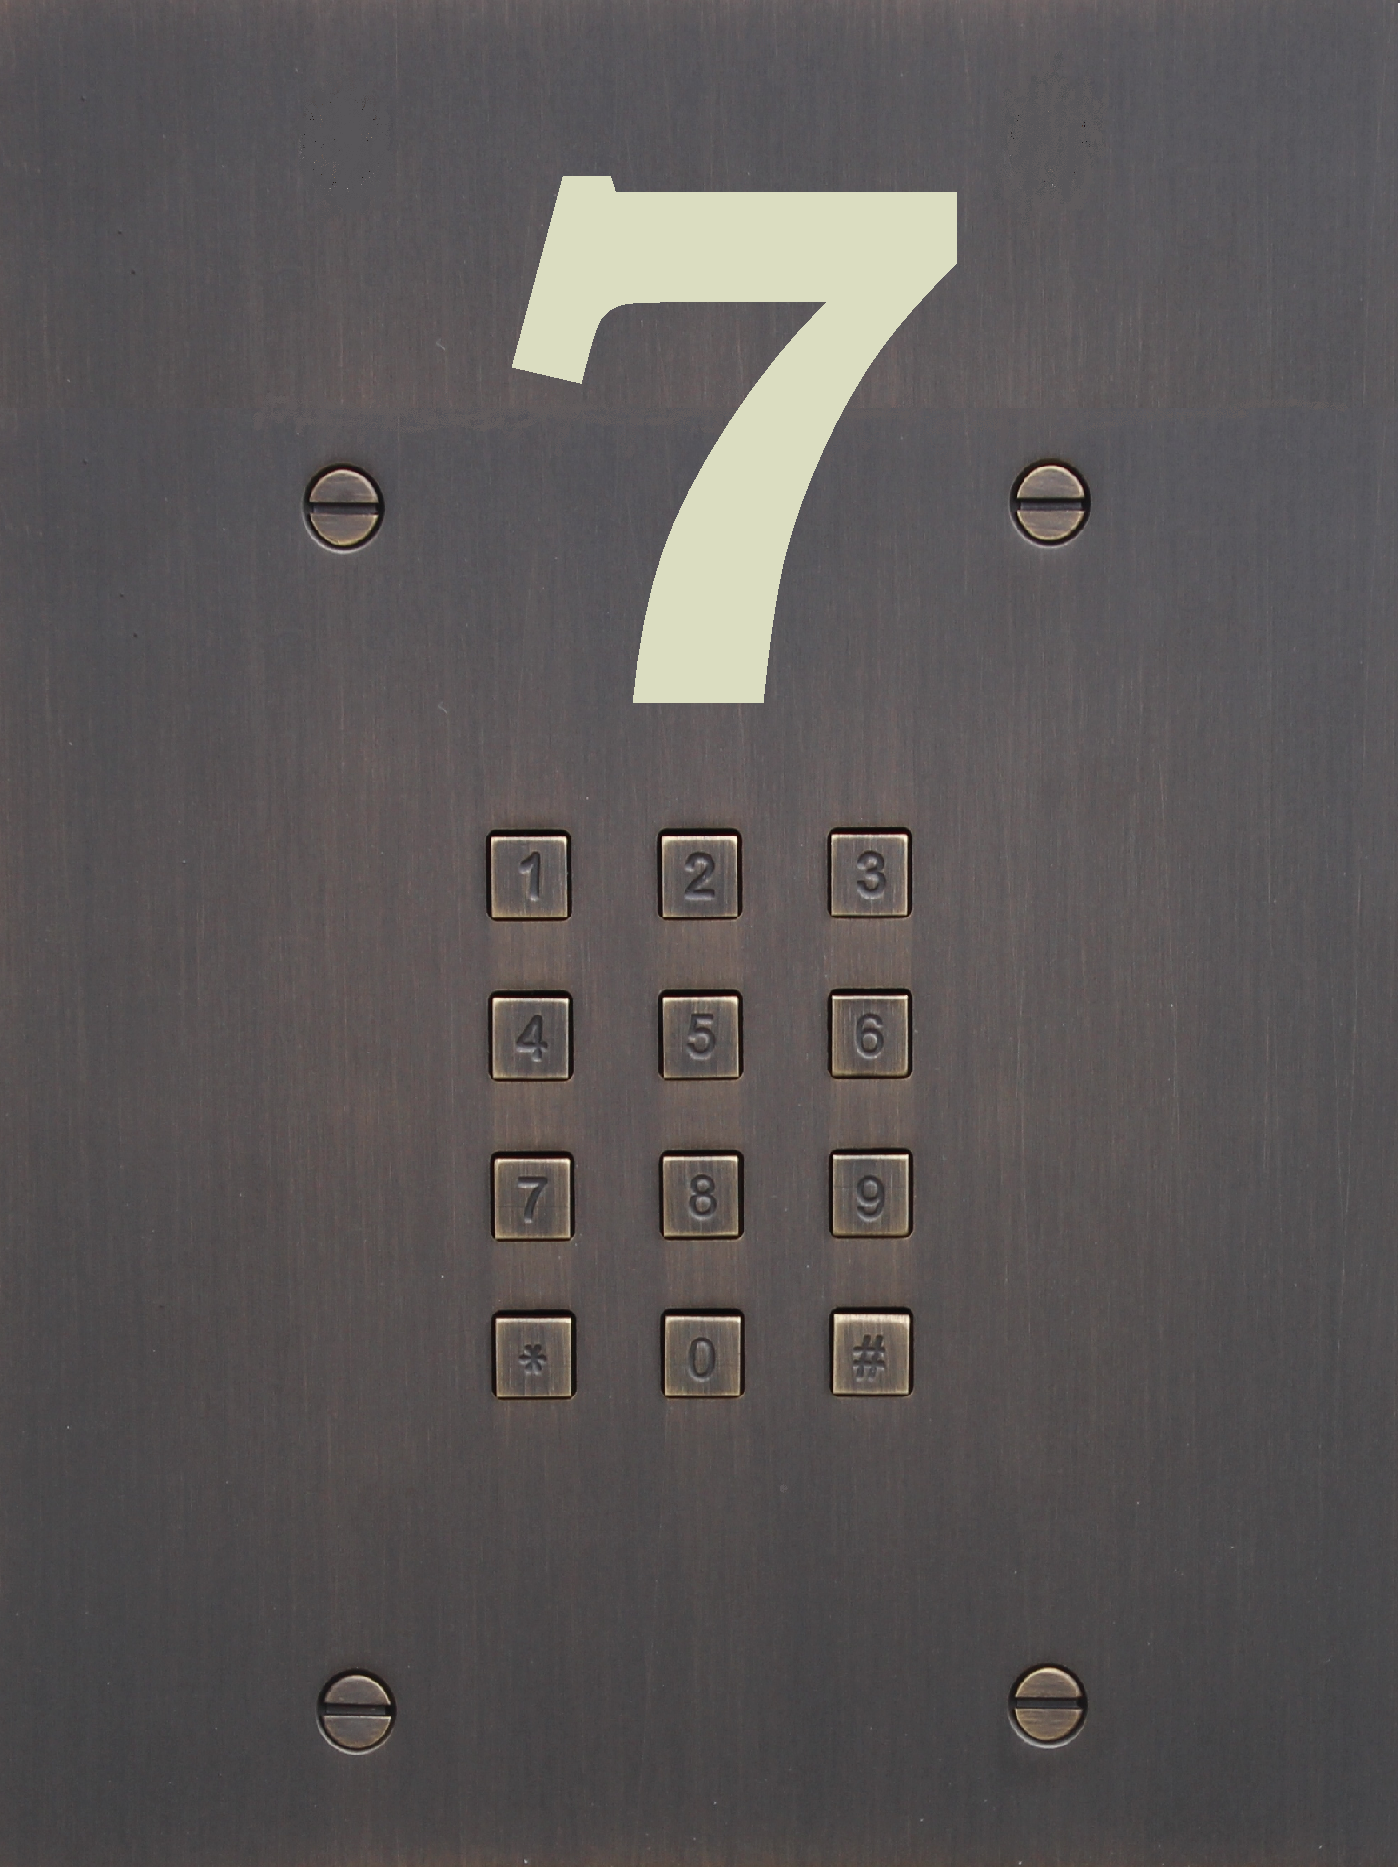 Fasttel access keypad FT24K bronze extensions: ekey finger print reader FT25NAME